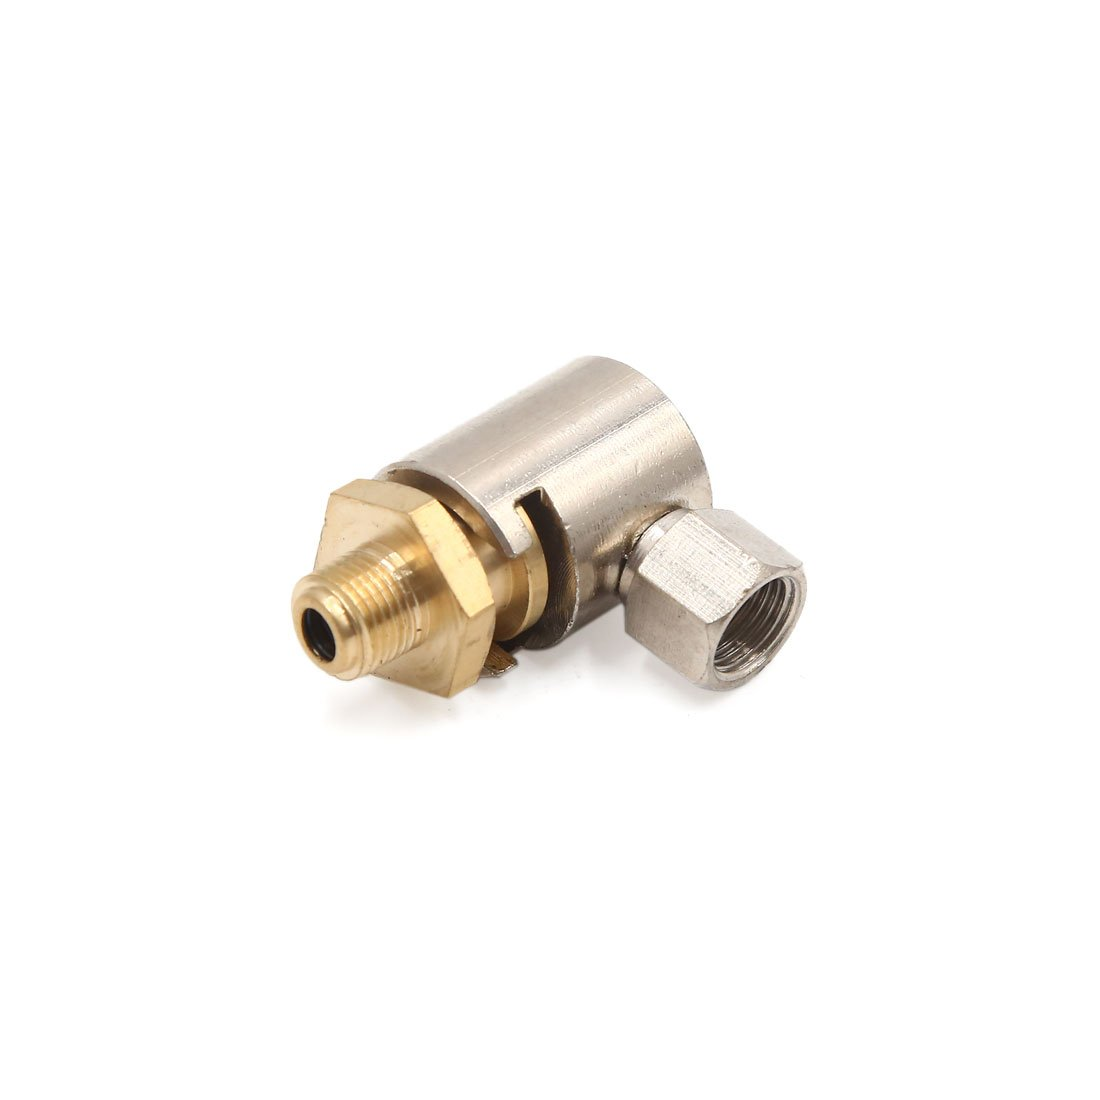 Uxcell a17083100ux0291 Brass Tone Button Head Grease Zerk Nipple Fitting Coupler for Car Vehichle